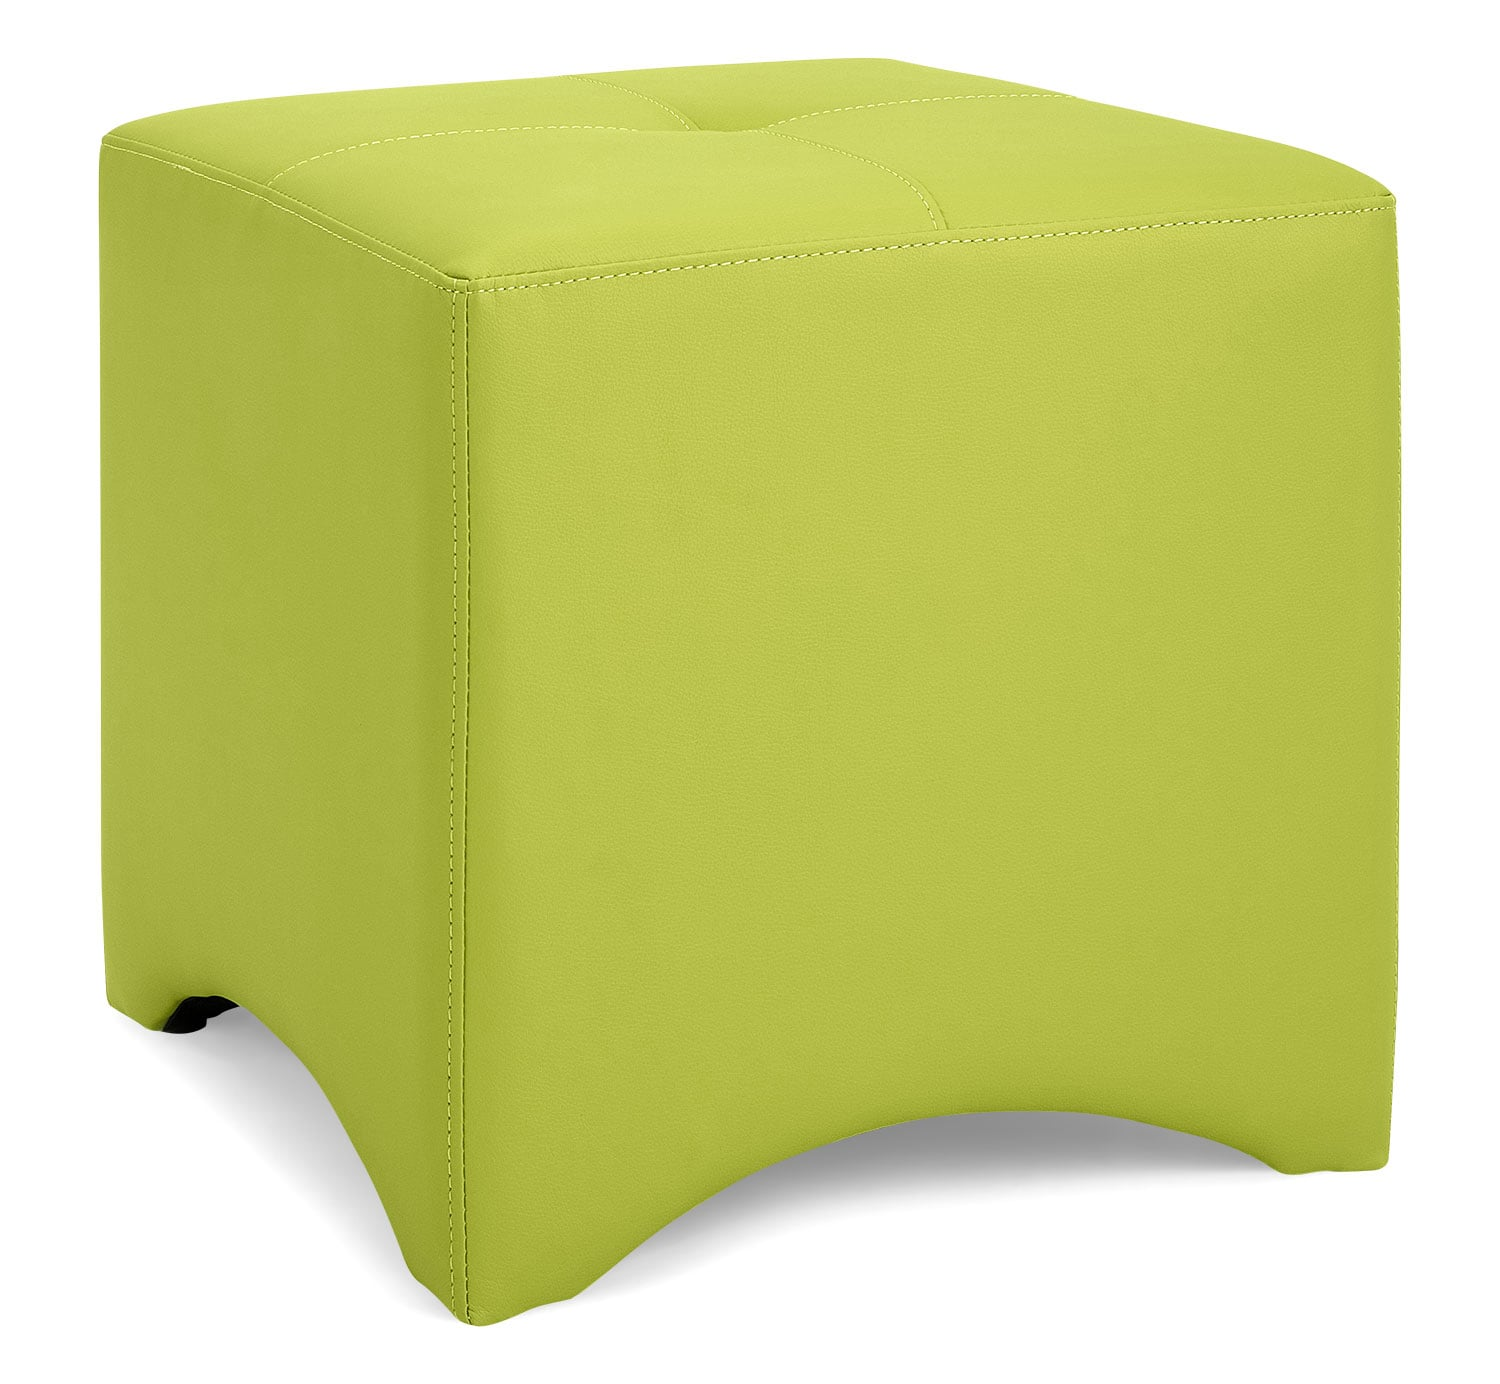 Lux Ottoman – Lime Green